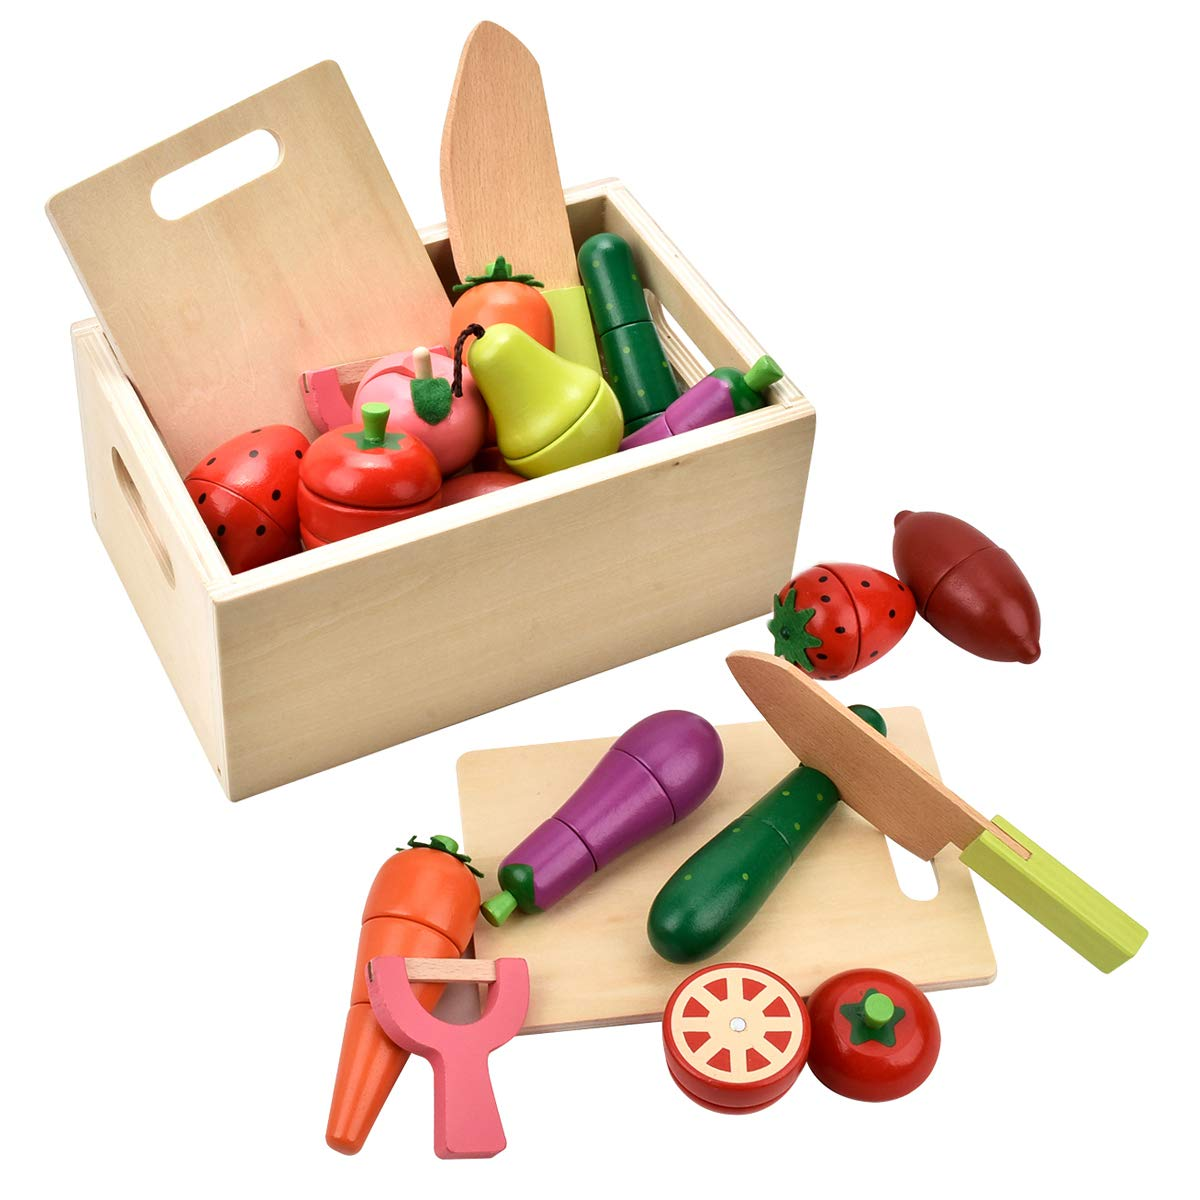 CARLORBO Play Food for Kids Pretend Play Kitchen - WoodenToys Vegetables and Fruit for 2 Year Old Boys Girls Early Educational Development by CARLORBO